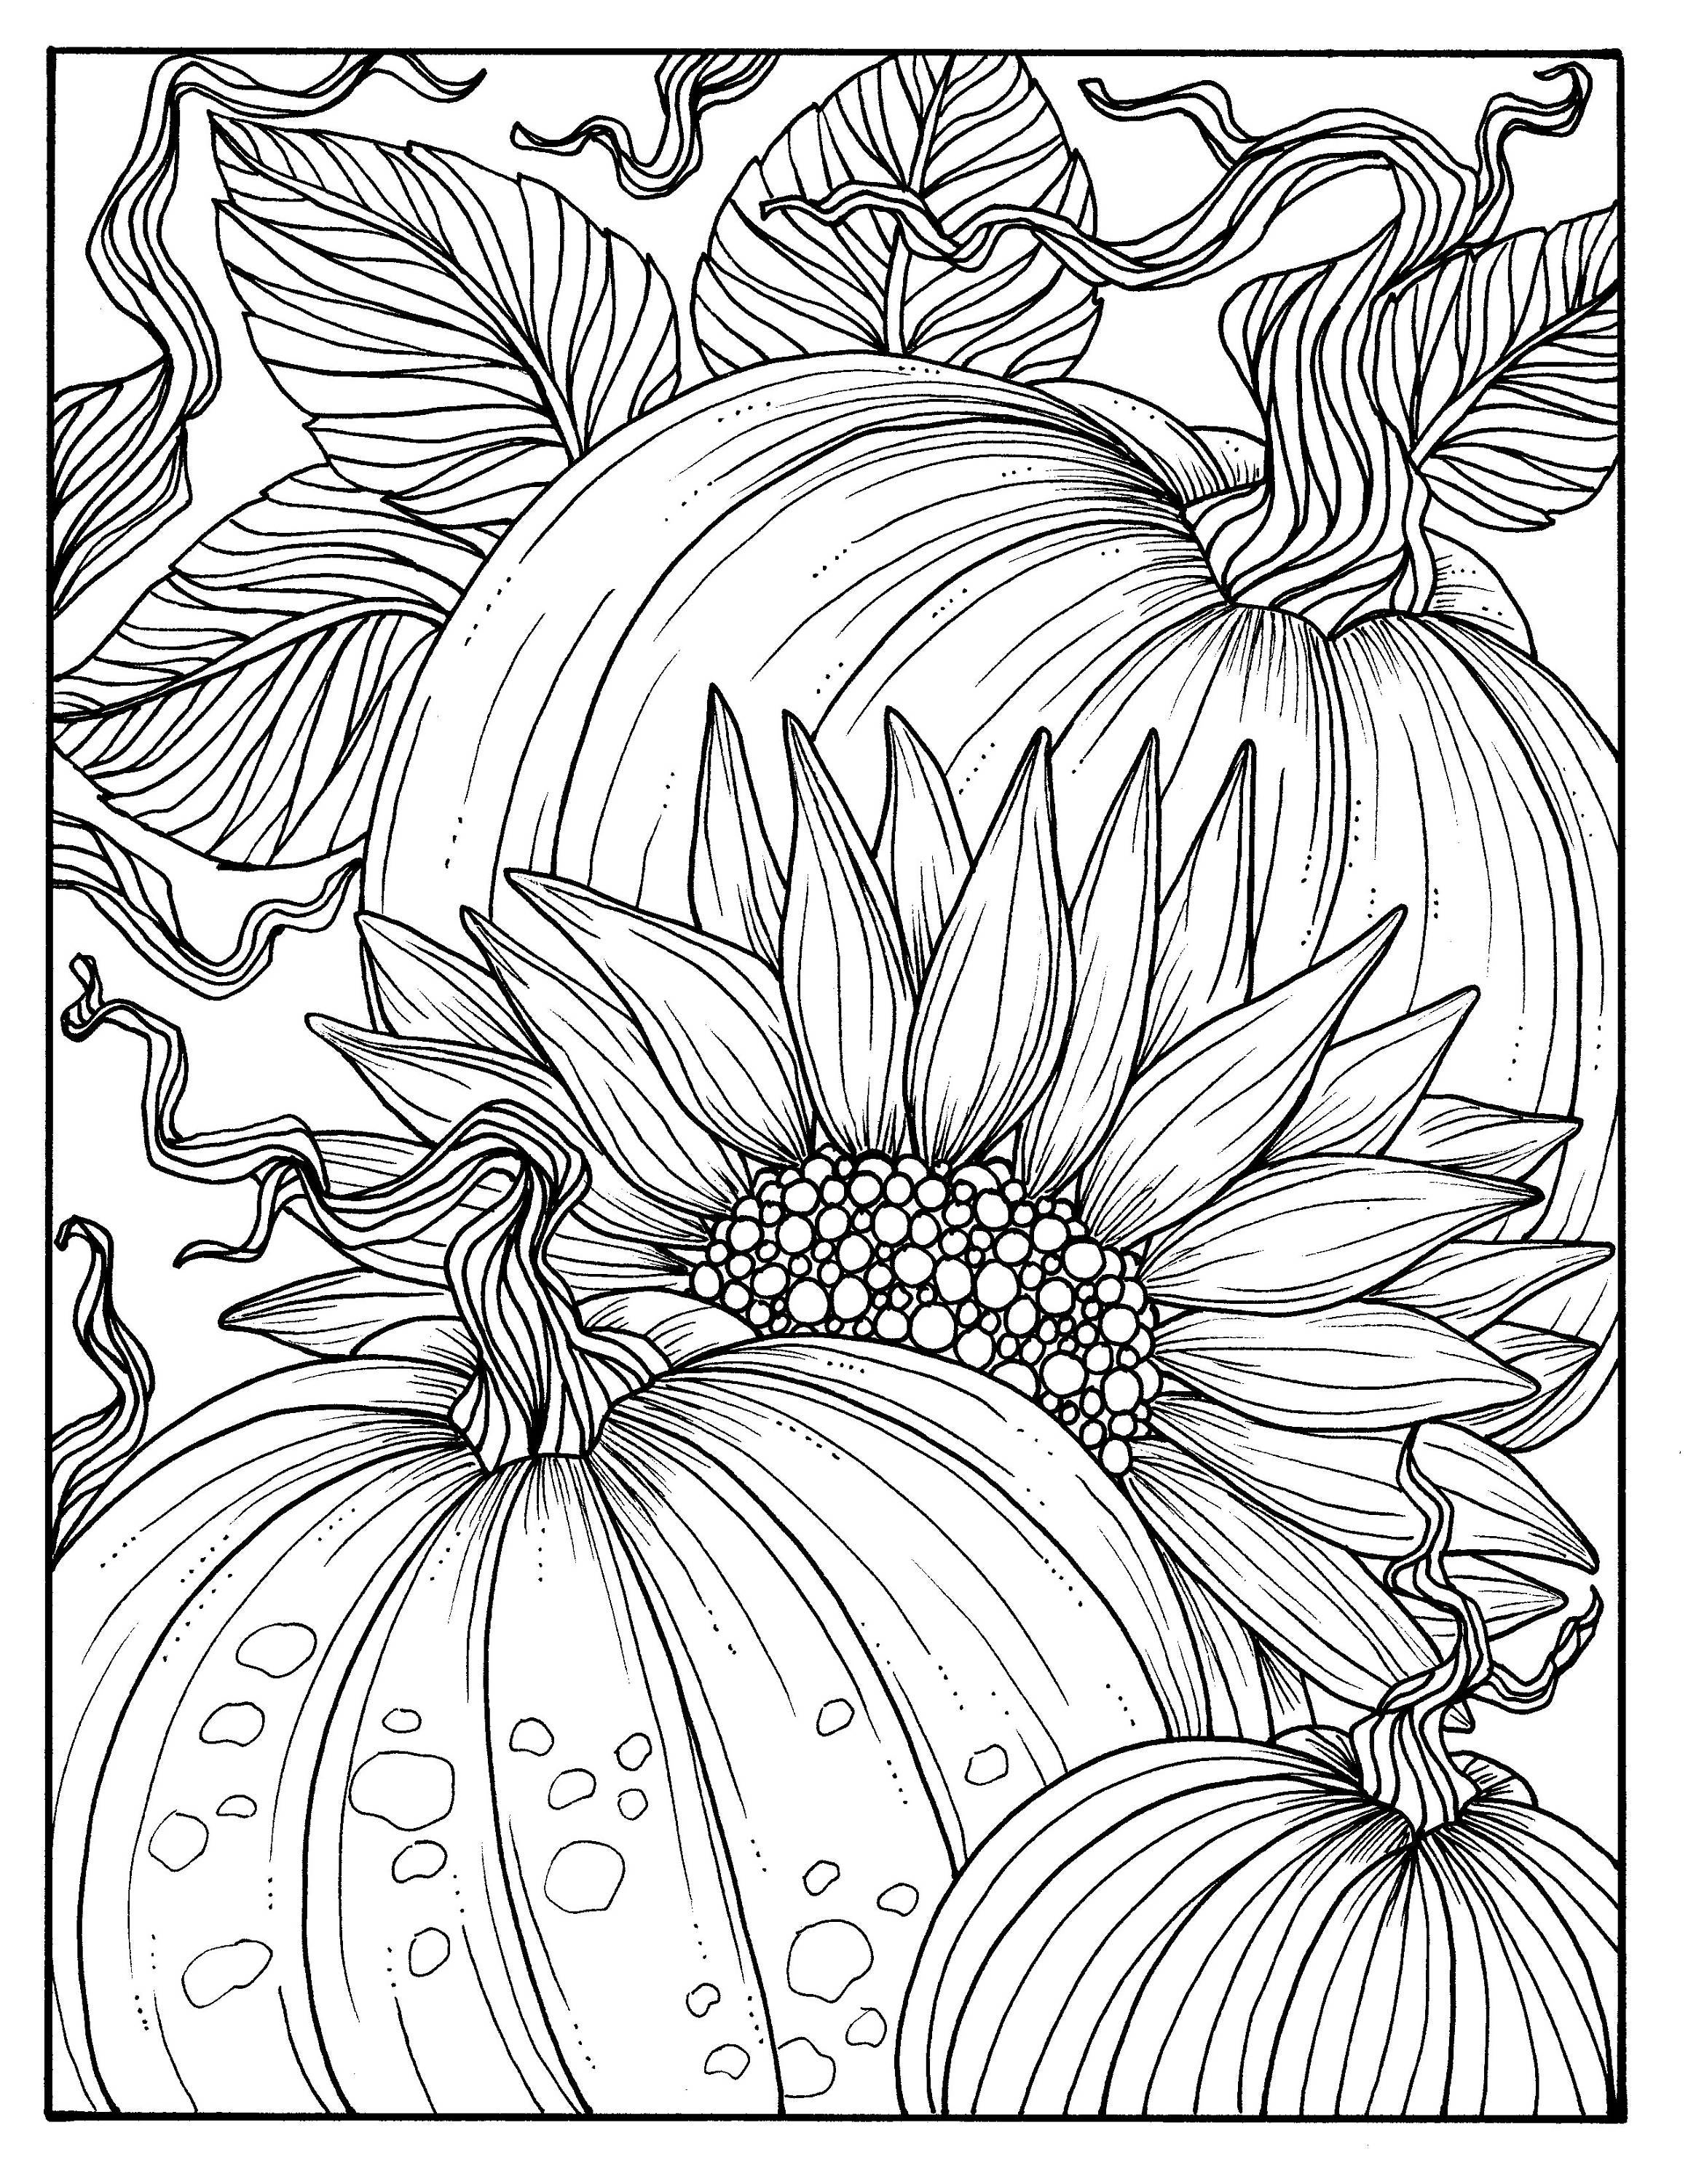 5 pages fabulous fall digital downloads to color punpkins for Pumpkin coloring pages for adults